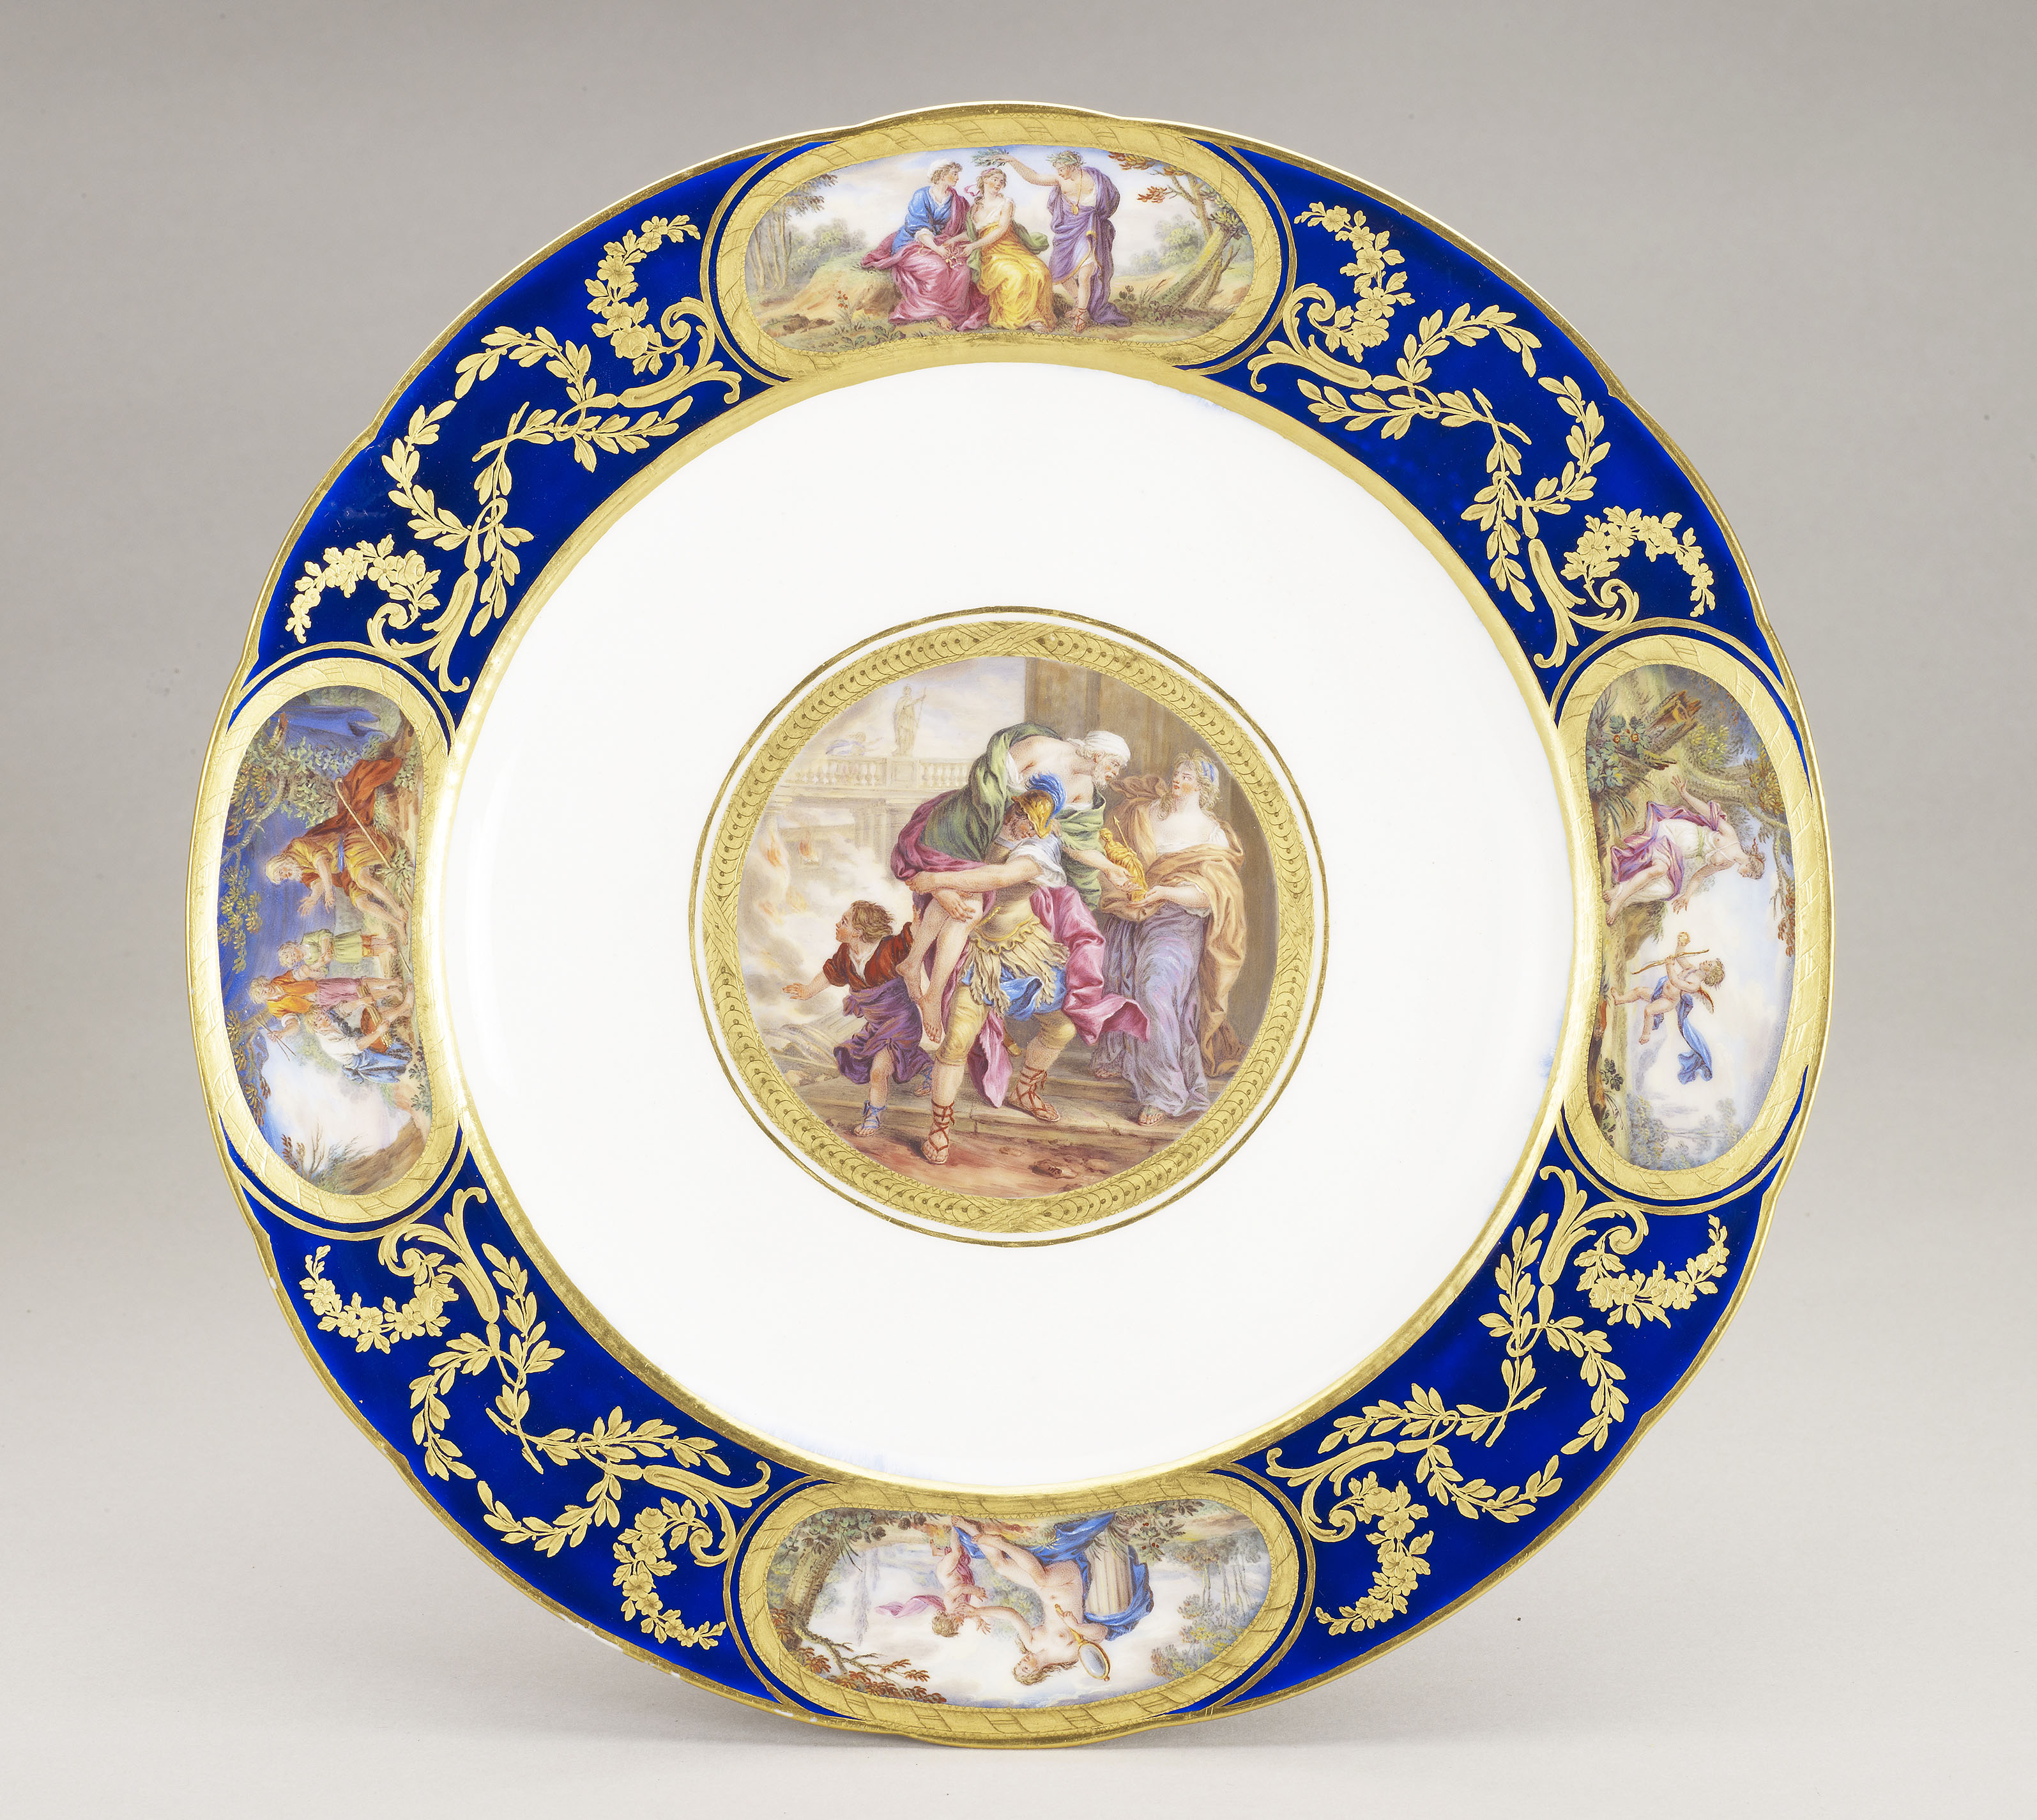 Sevres, Dinner plate from the Louis XVI service, 1783-92